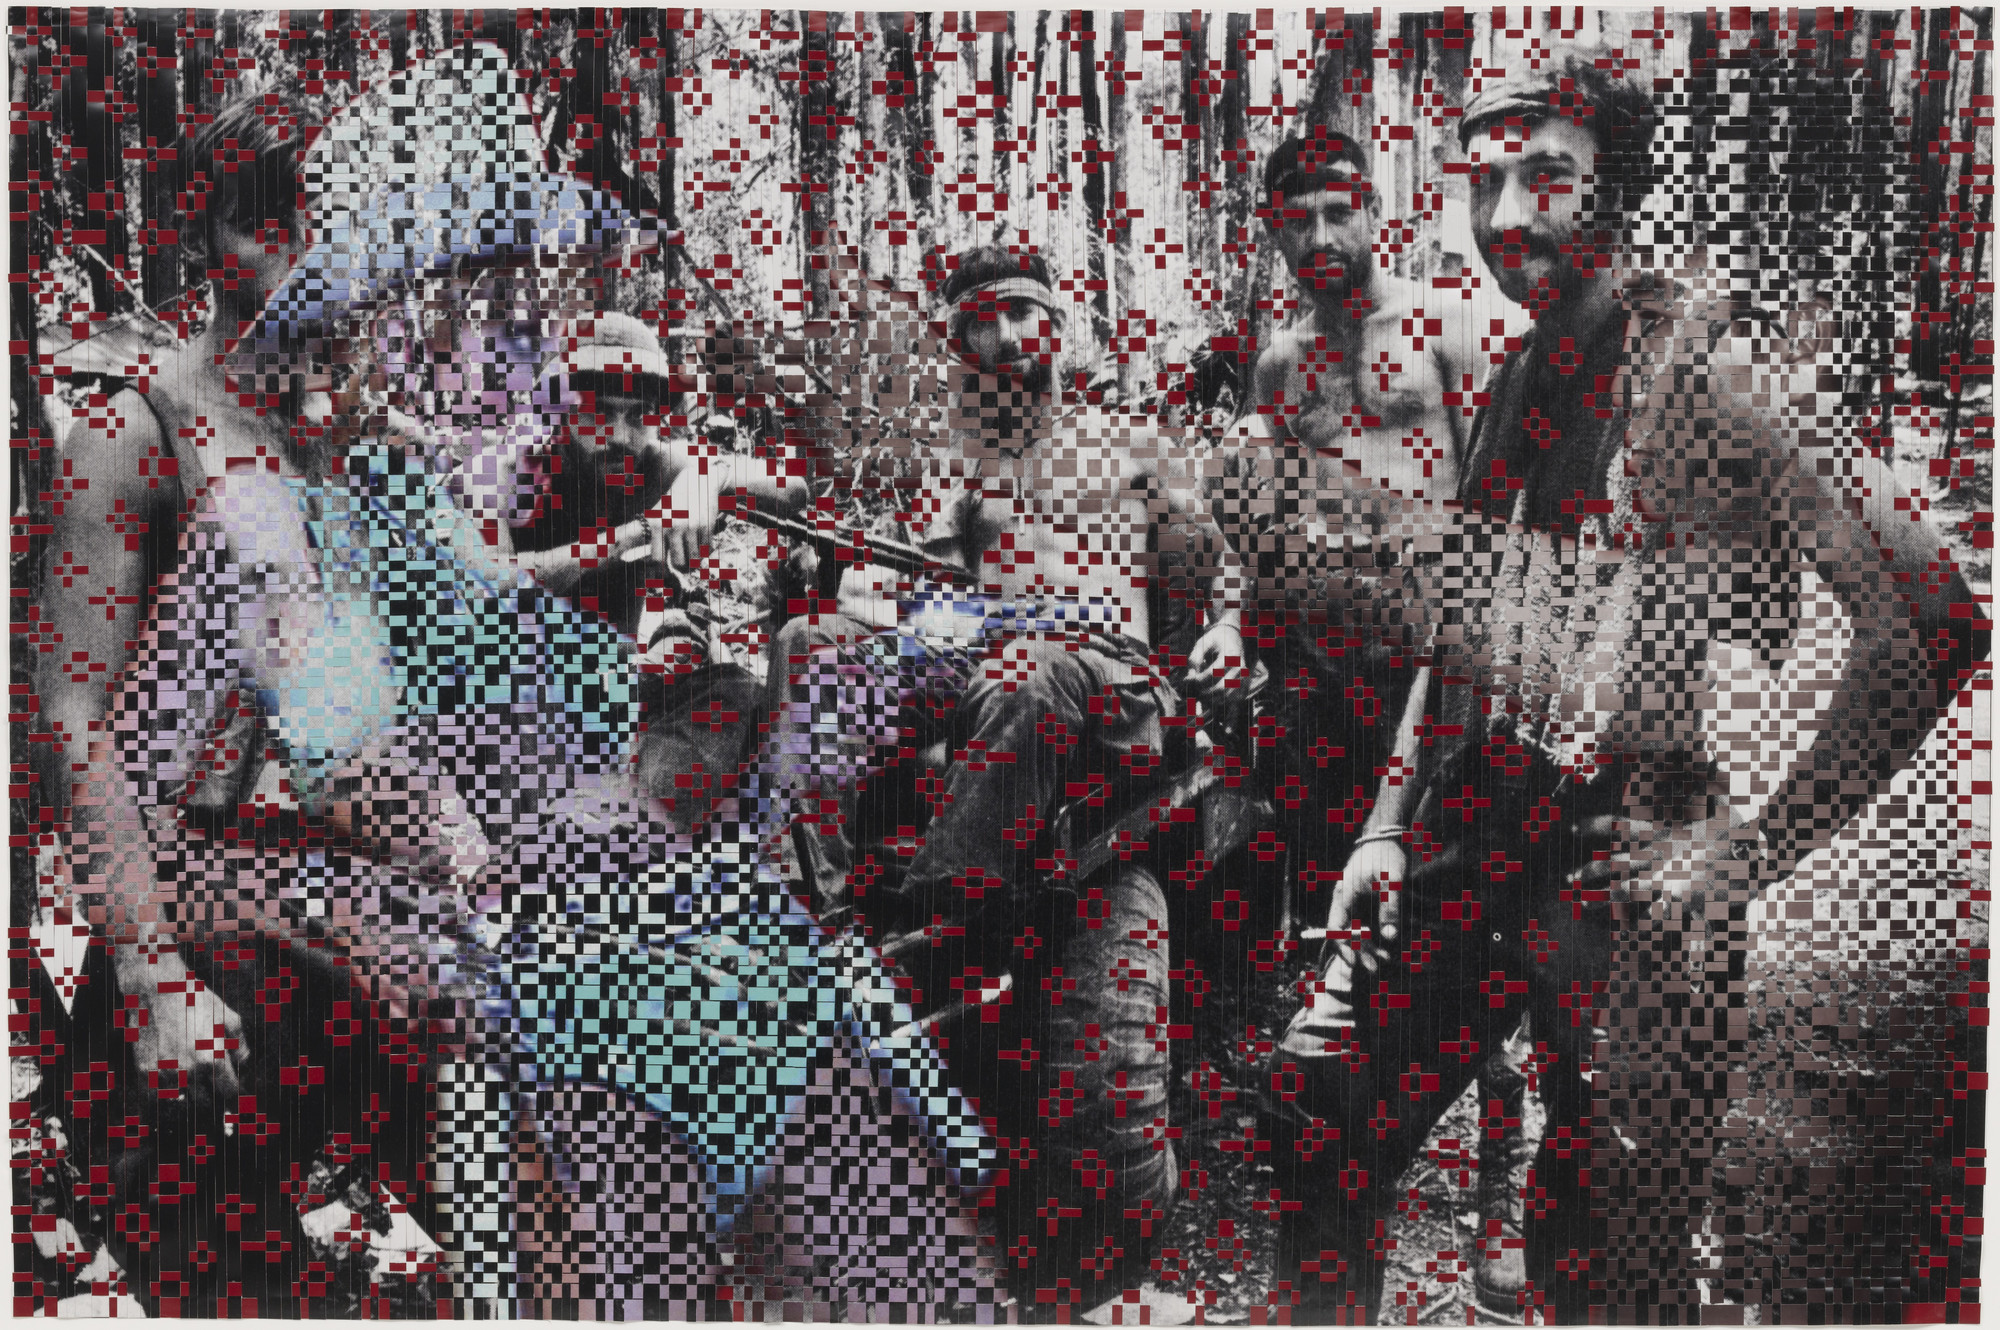 Dinh Q. Lê. Untitled (Soldiers at Rest). (2003)